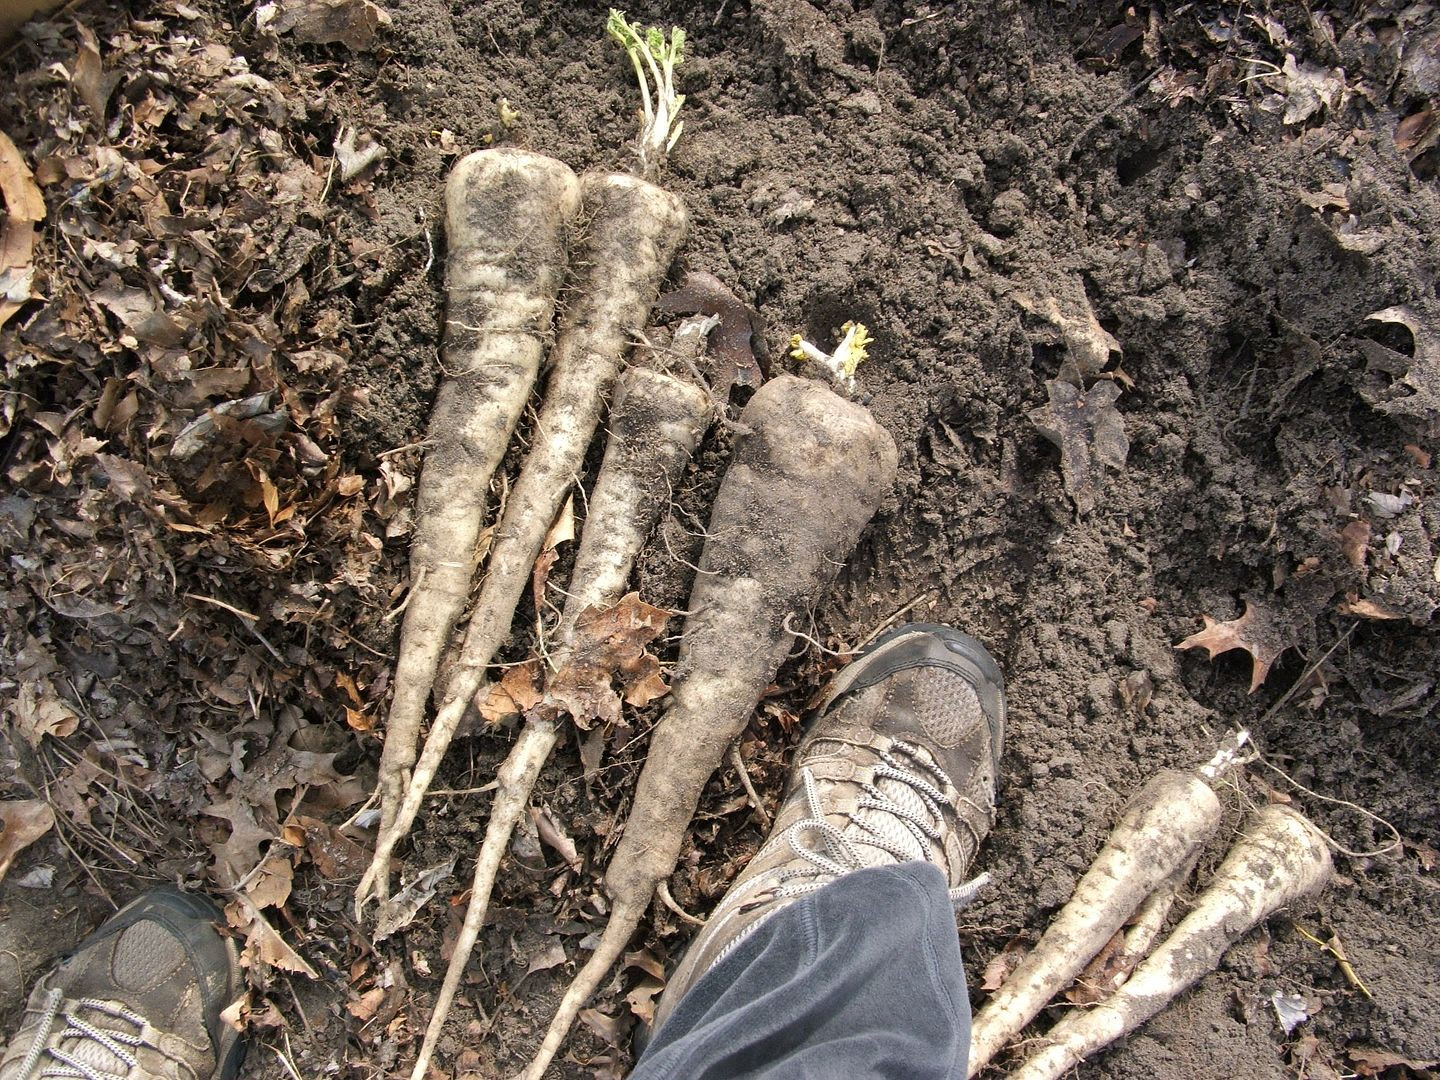 Larger Than Feet Parsnips by Angie Ouellette-Tower for godsgrowinggarden.com photo 011_zpsa04307c6.jpg